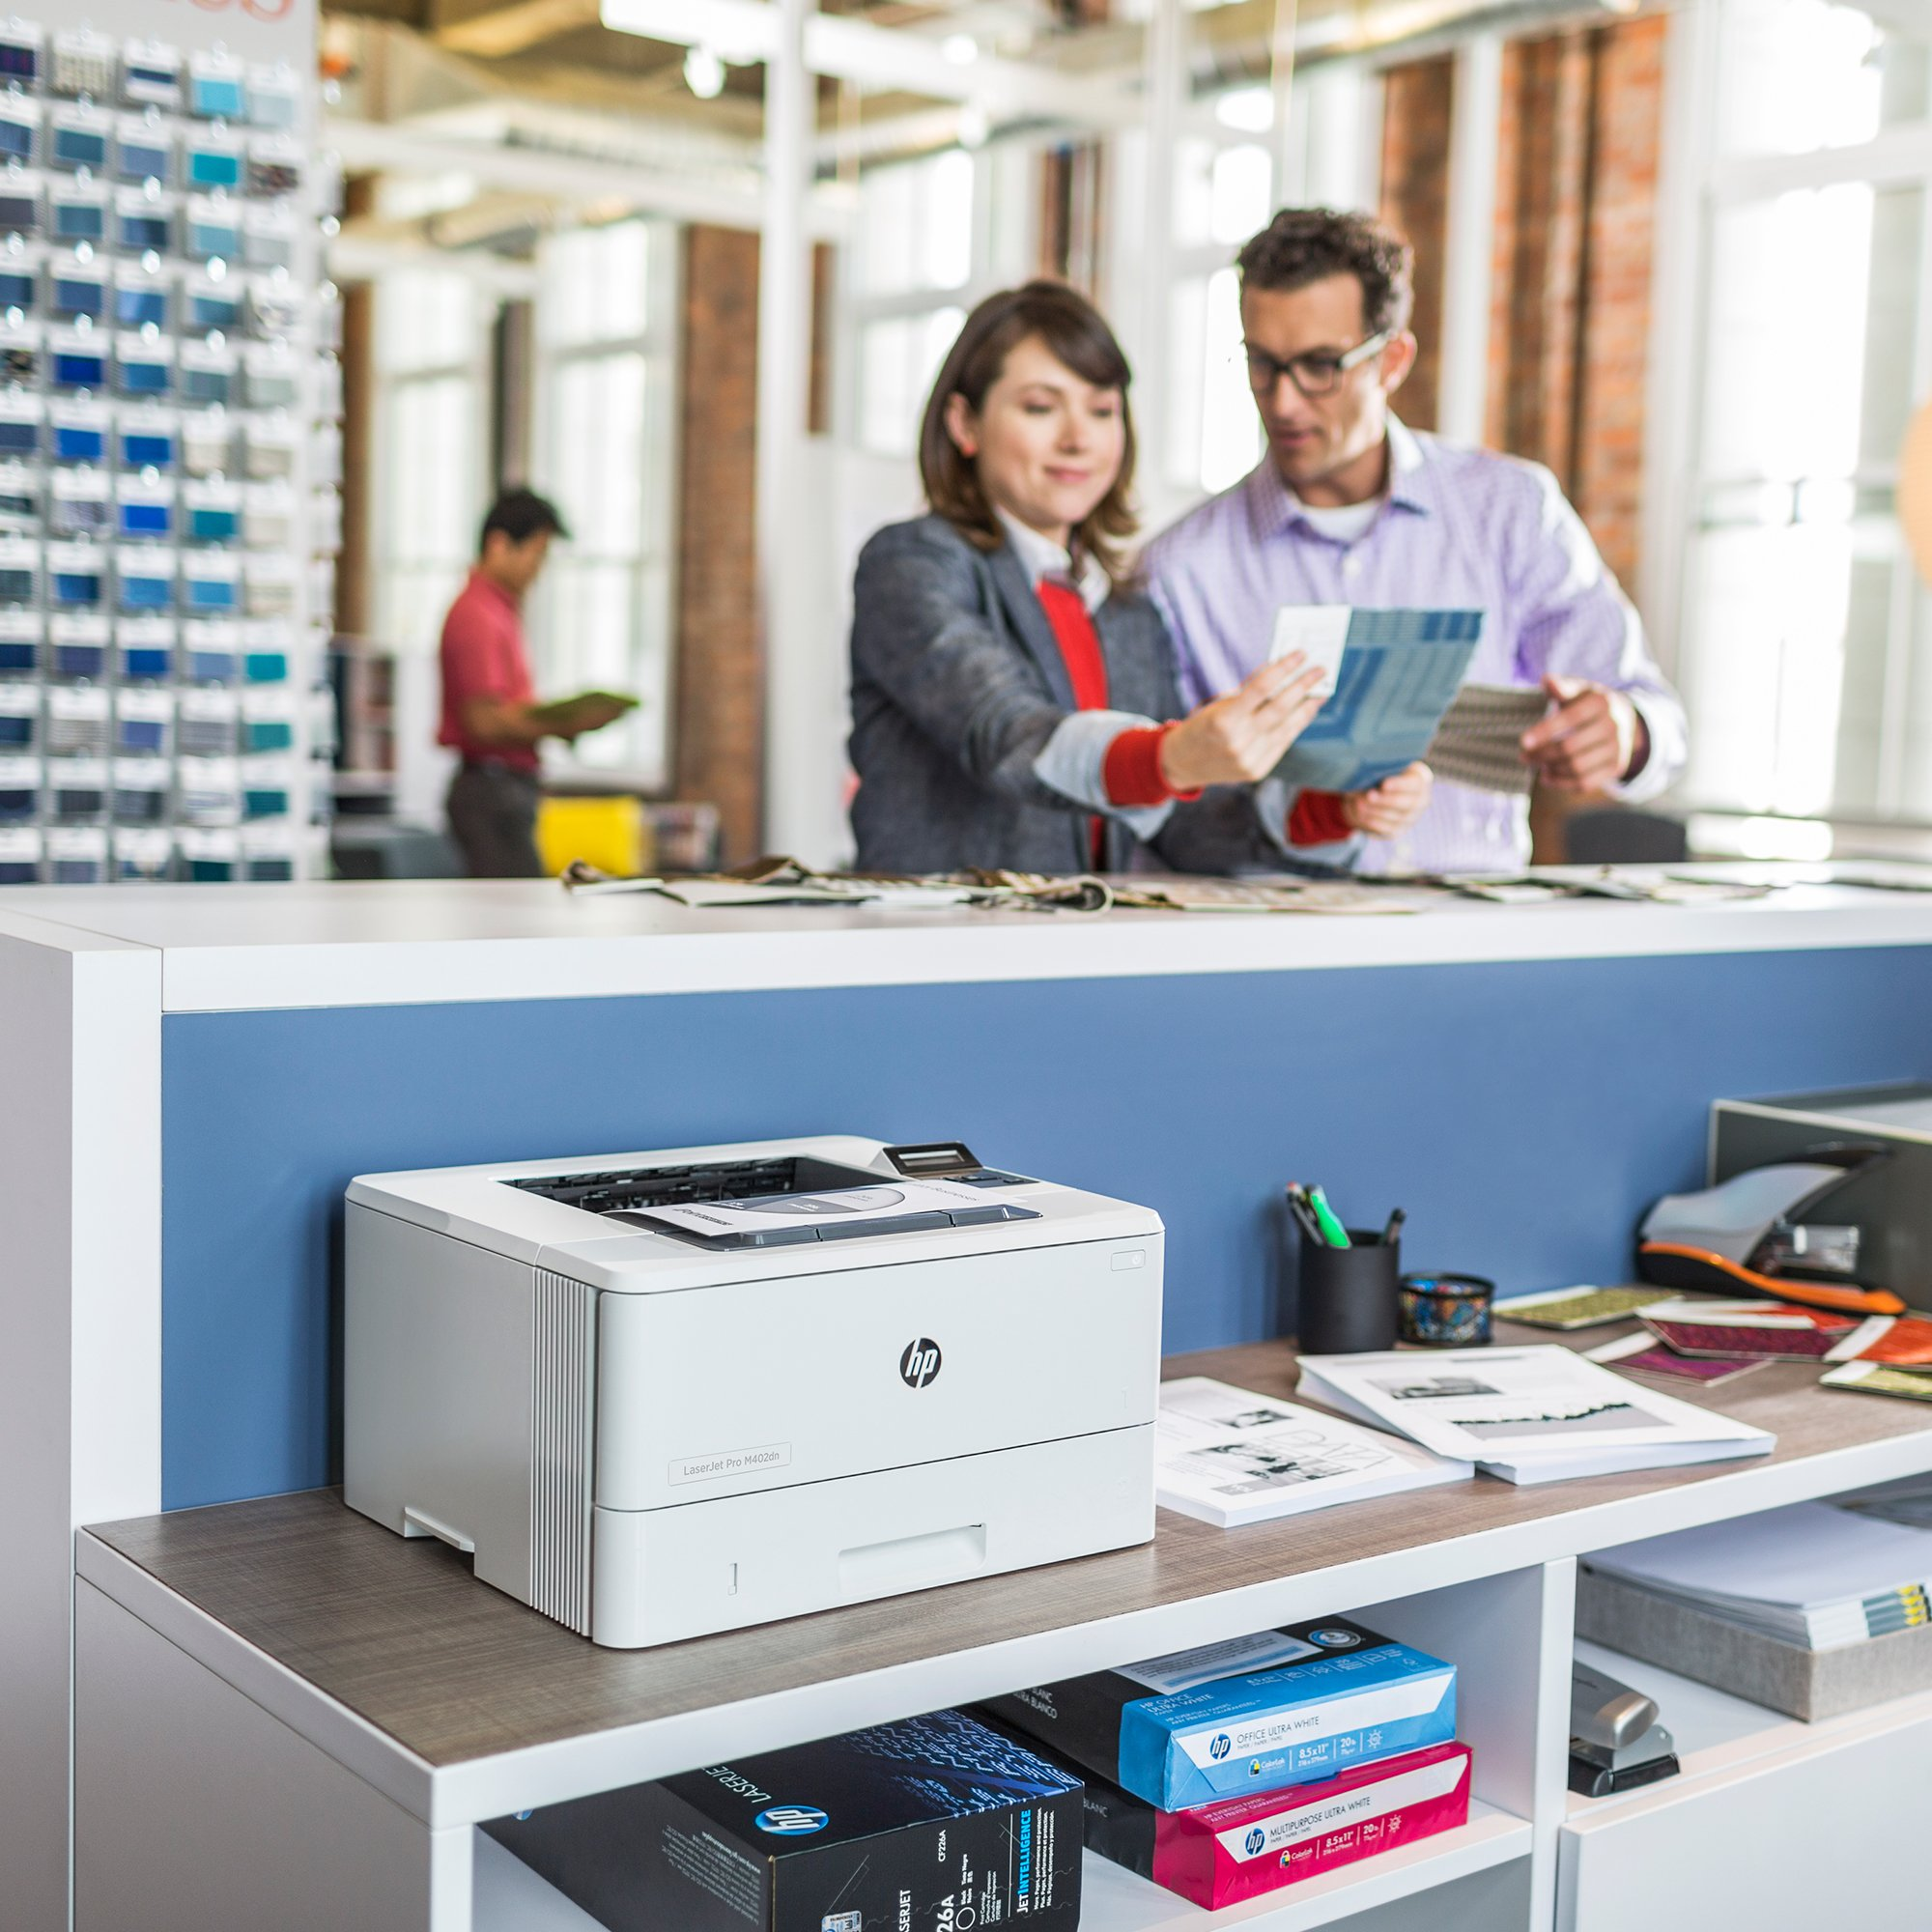 HP LaserJet Pro M402dn Laser Printer with Built-in Ethernet & Double-Sided Printing, Amazon Dash Replenishment ready (C5F94A) by HP (Image #9)